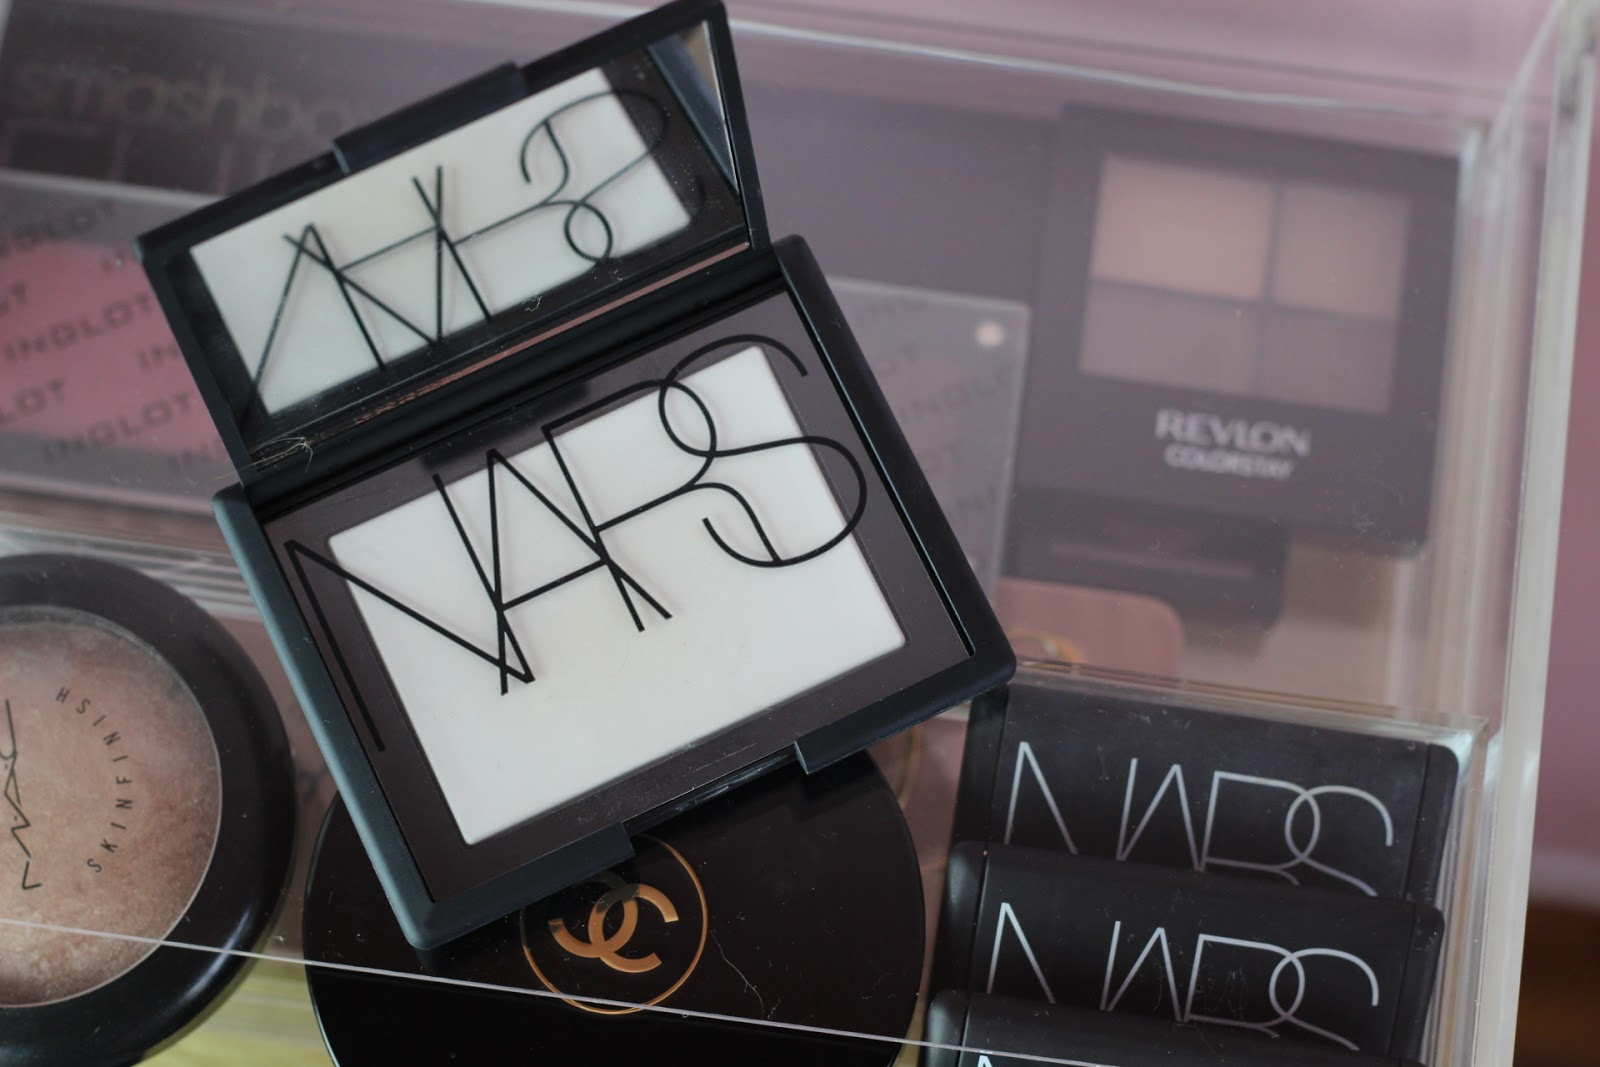 Nars Light Reflecting Pressed Powder In Crystal